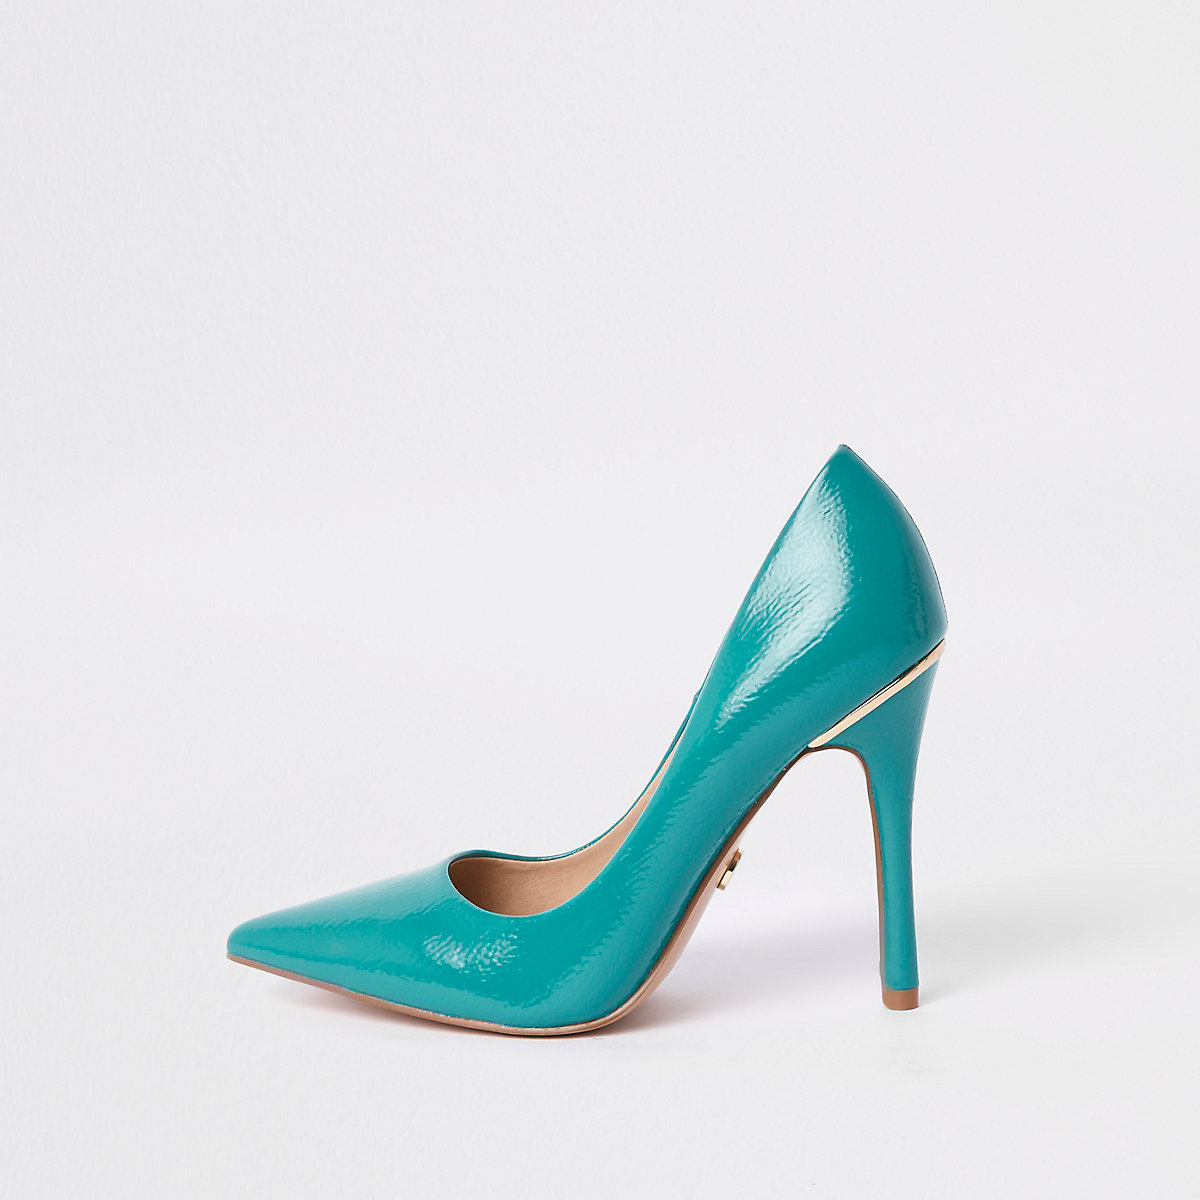 Light blue patent pumps